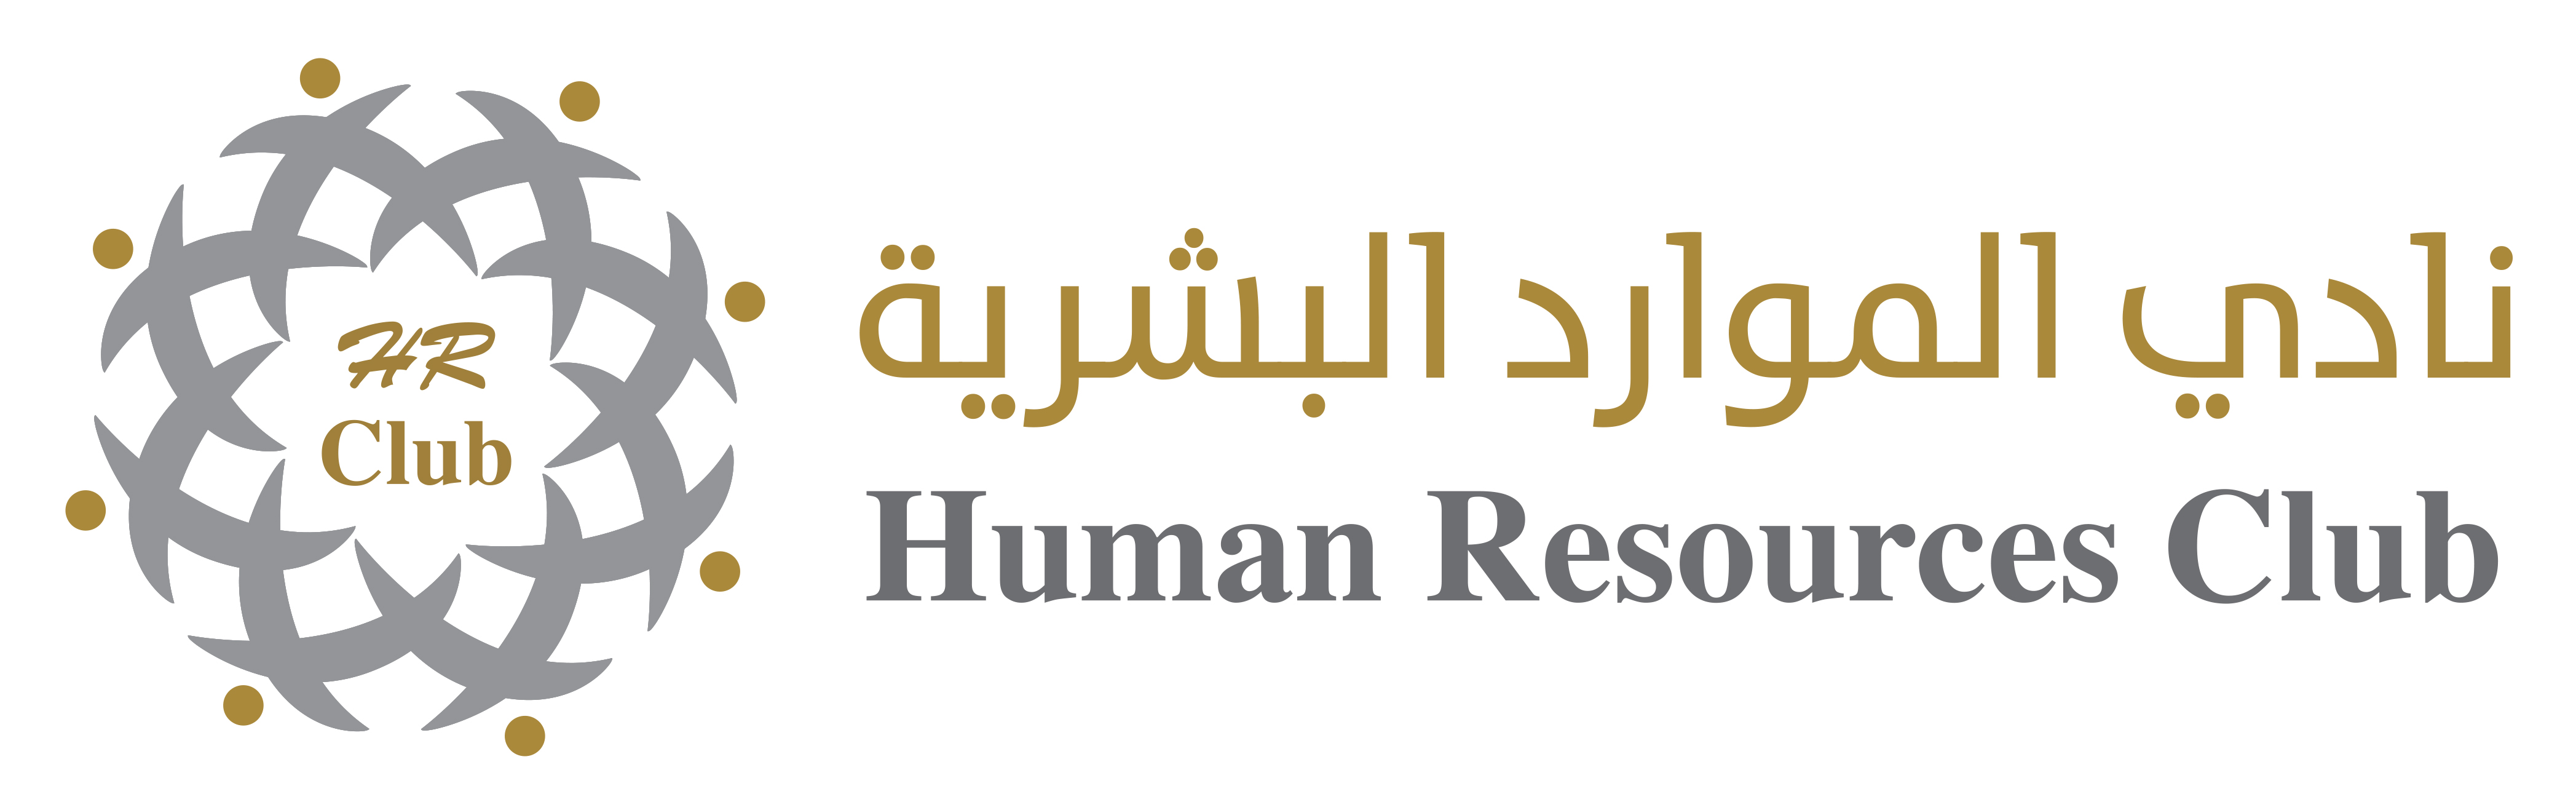 Human Resources Club Logo